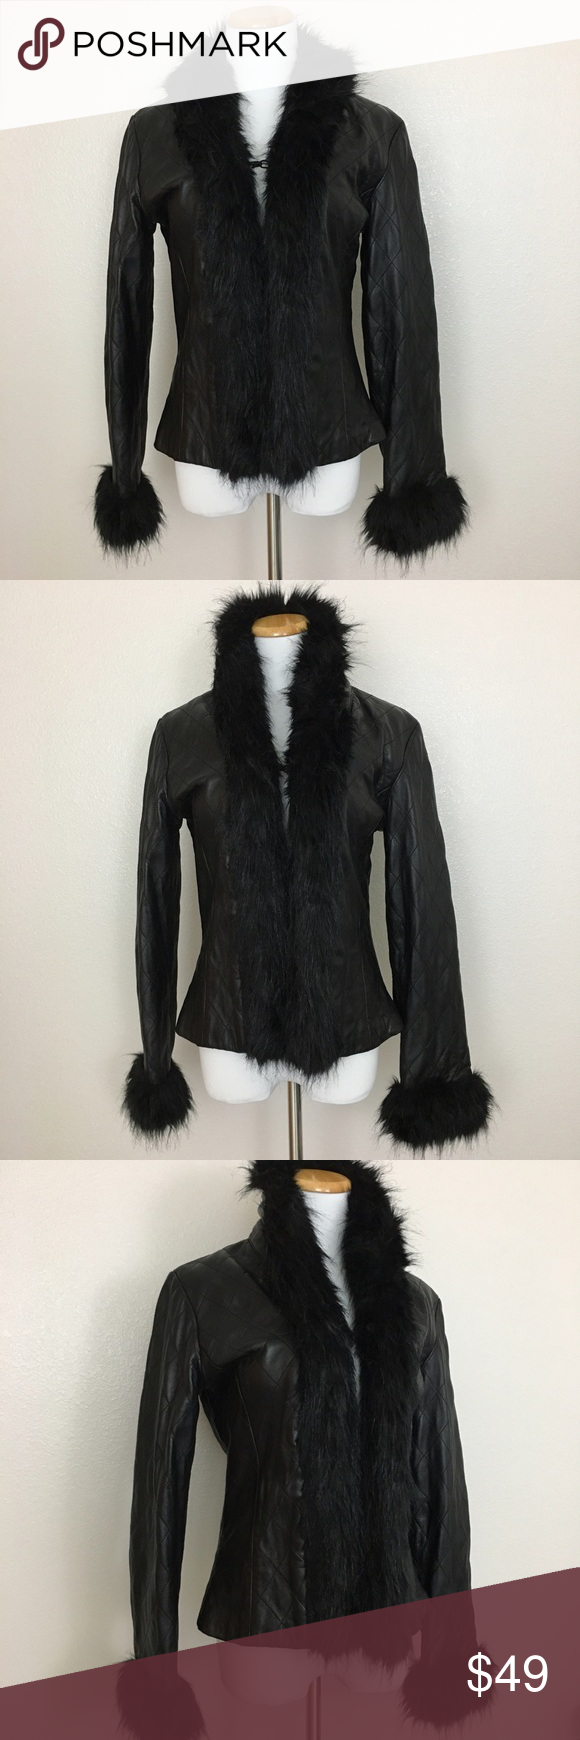 Venus Williams Wilsons Leather Jacket, faux fur, S Venus